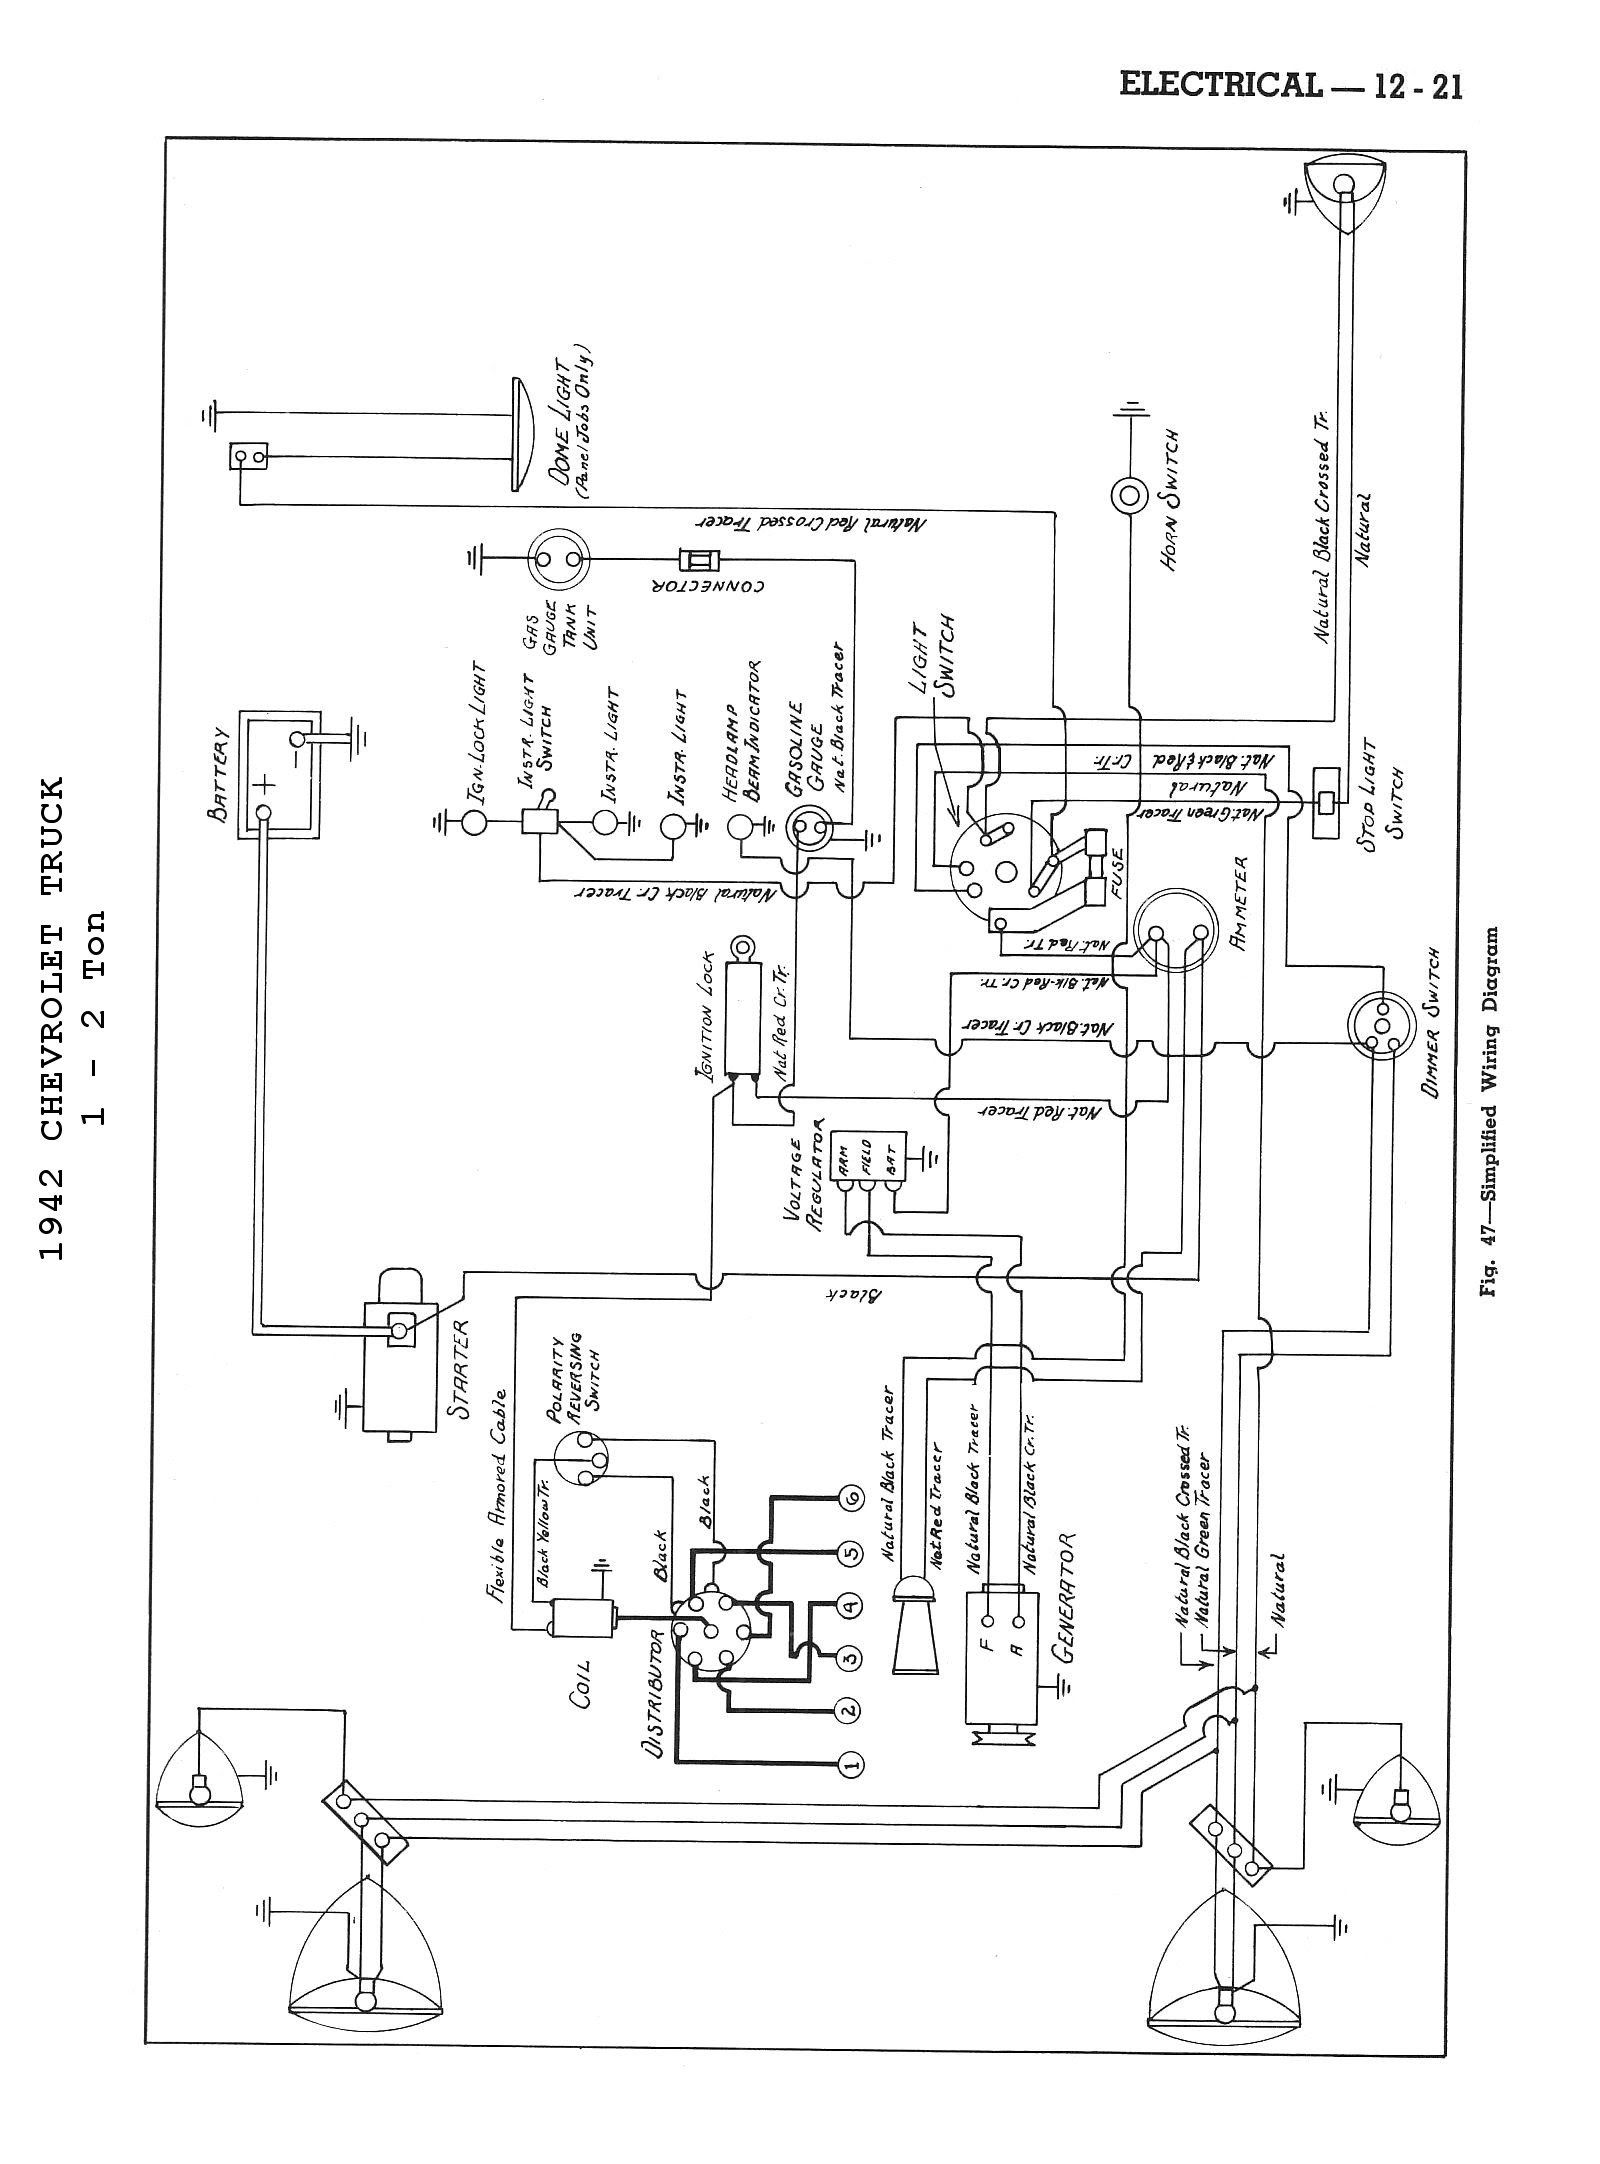 1955 Chevy Wiring Diagram Wiring Diagram Extend Extend Lechicchedimammavale It